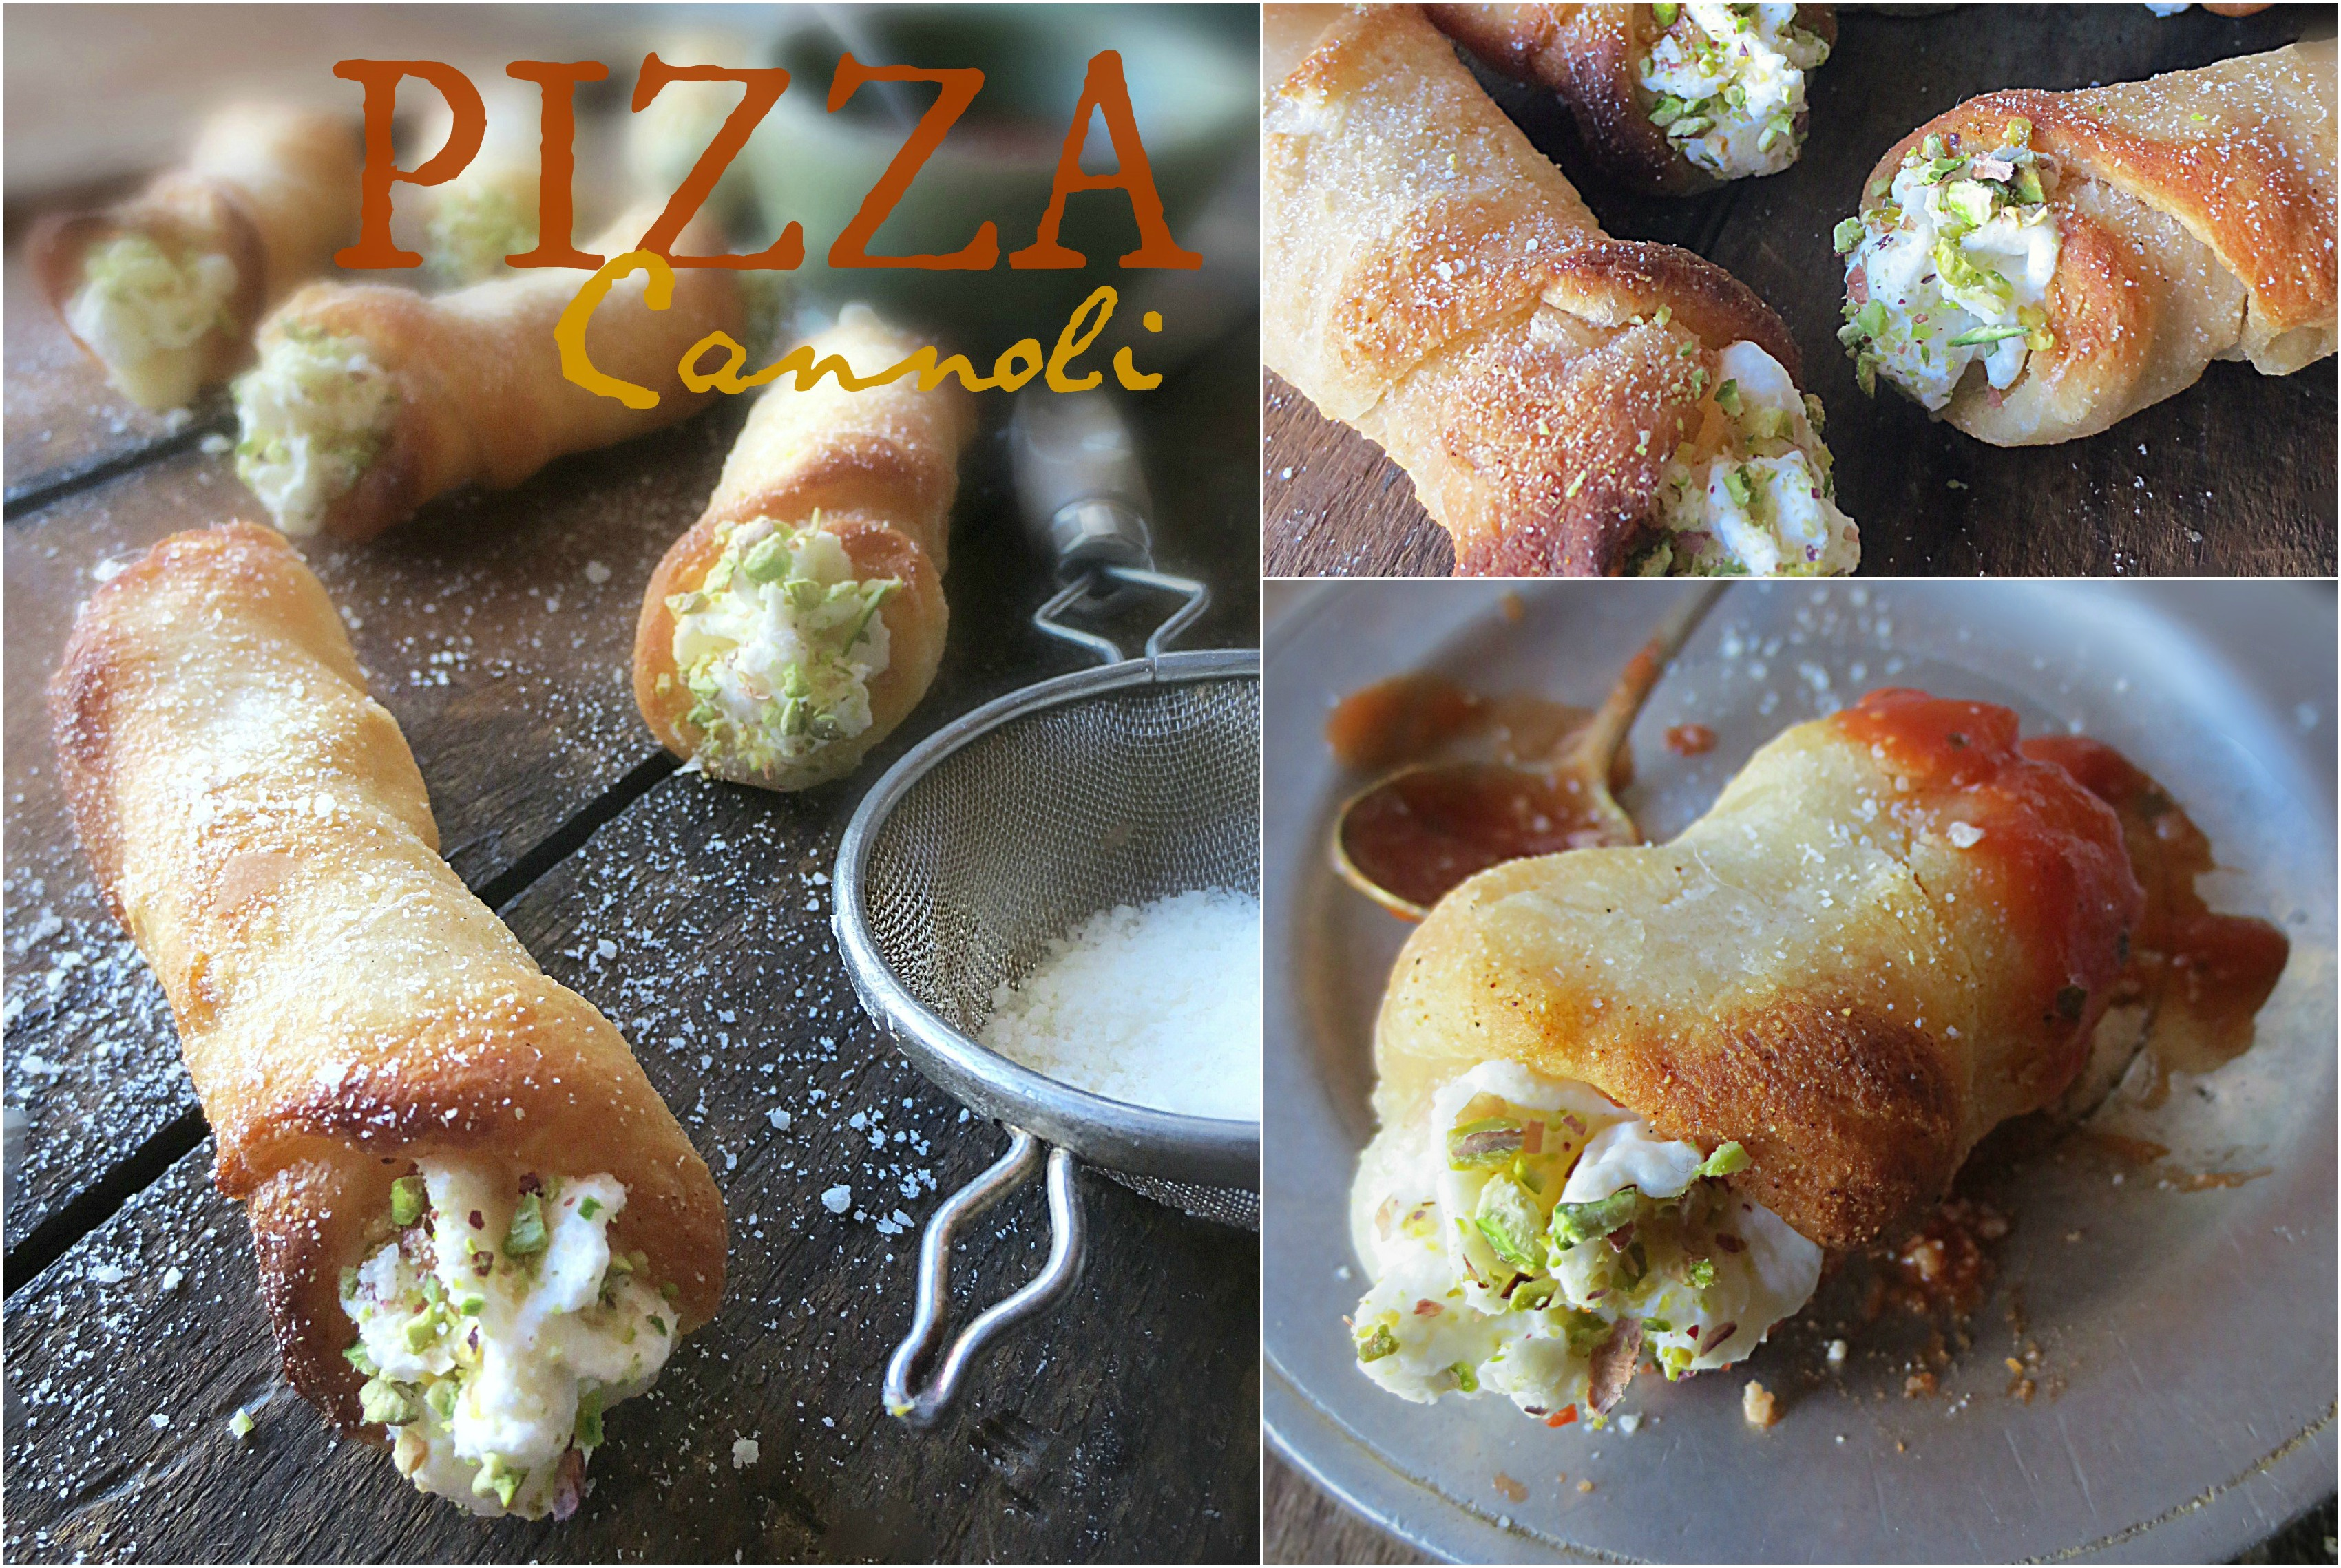 Pizza Cannoli